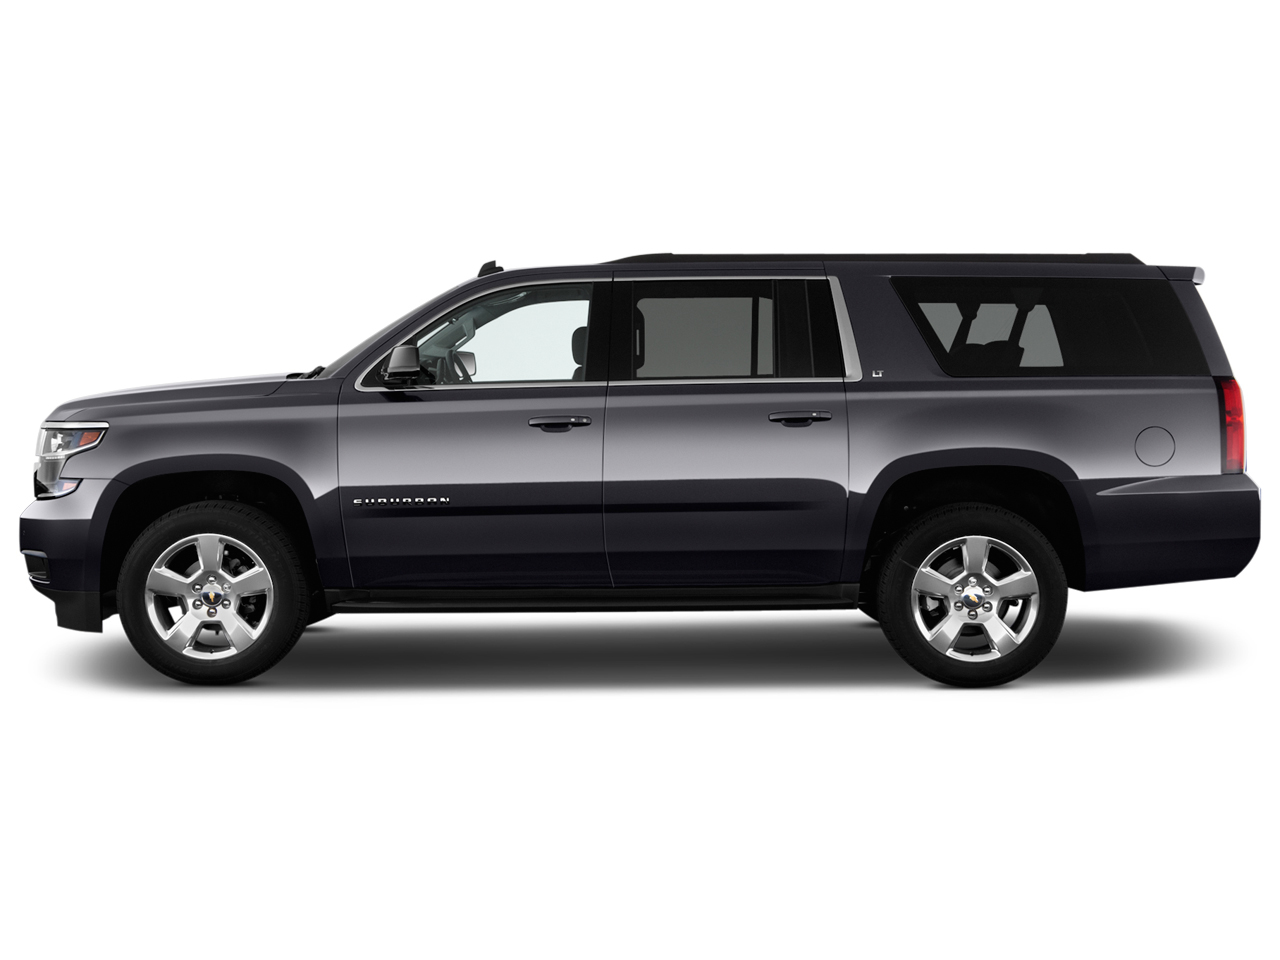 Chevrolet Tahoe 2019 >> Comparison - Chevrolet Suburban SUV 2016 - vs - Cadillac Escalade Luxury 2016 | SUV Drive